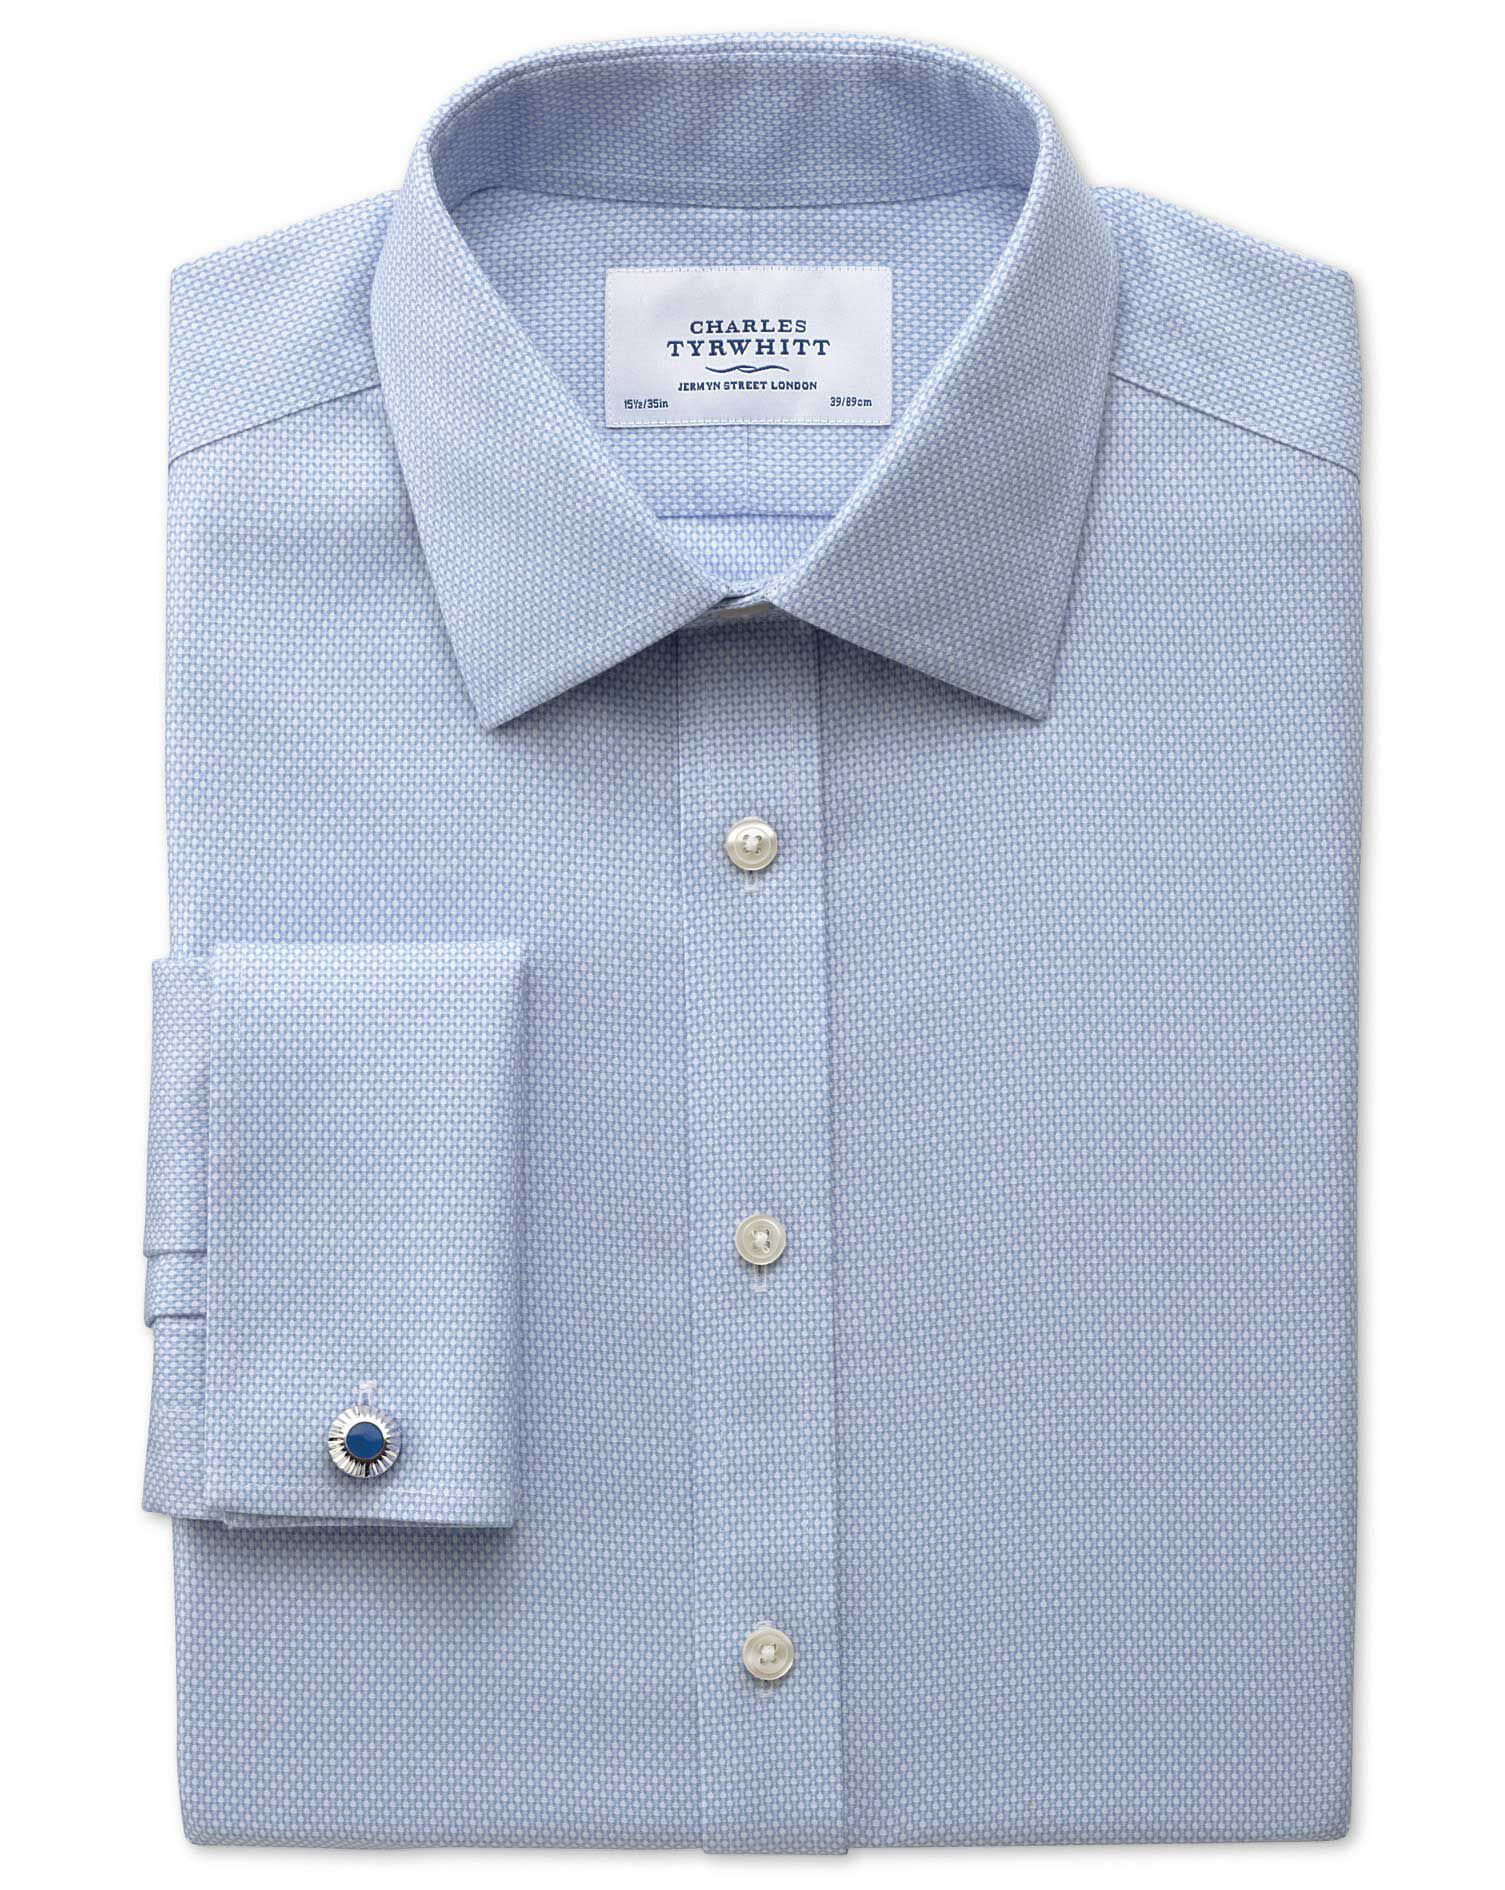 Classic Fit Non-Iron Honeycomb Sky Blue Cotton Formal Shirt Double Cuff Size 15.5/37 by Charles Tyrw